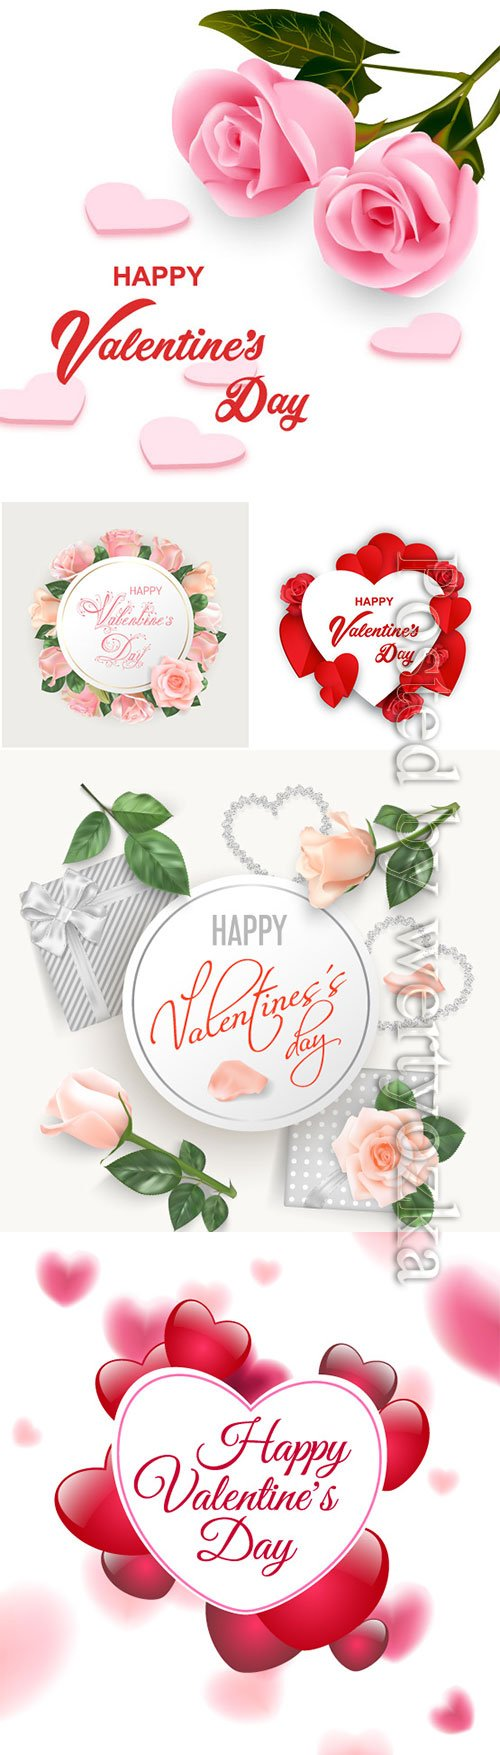 Happy Valentine's Day, vector hearts of couples in love # 20